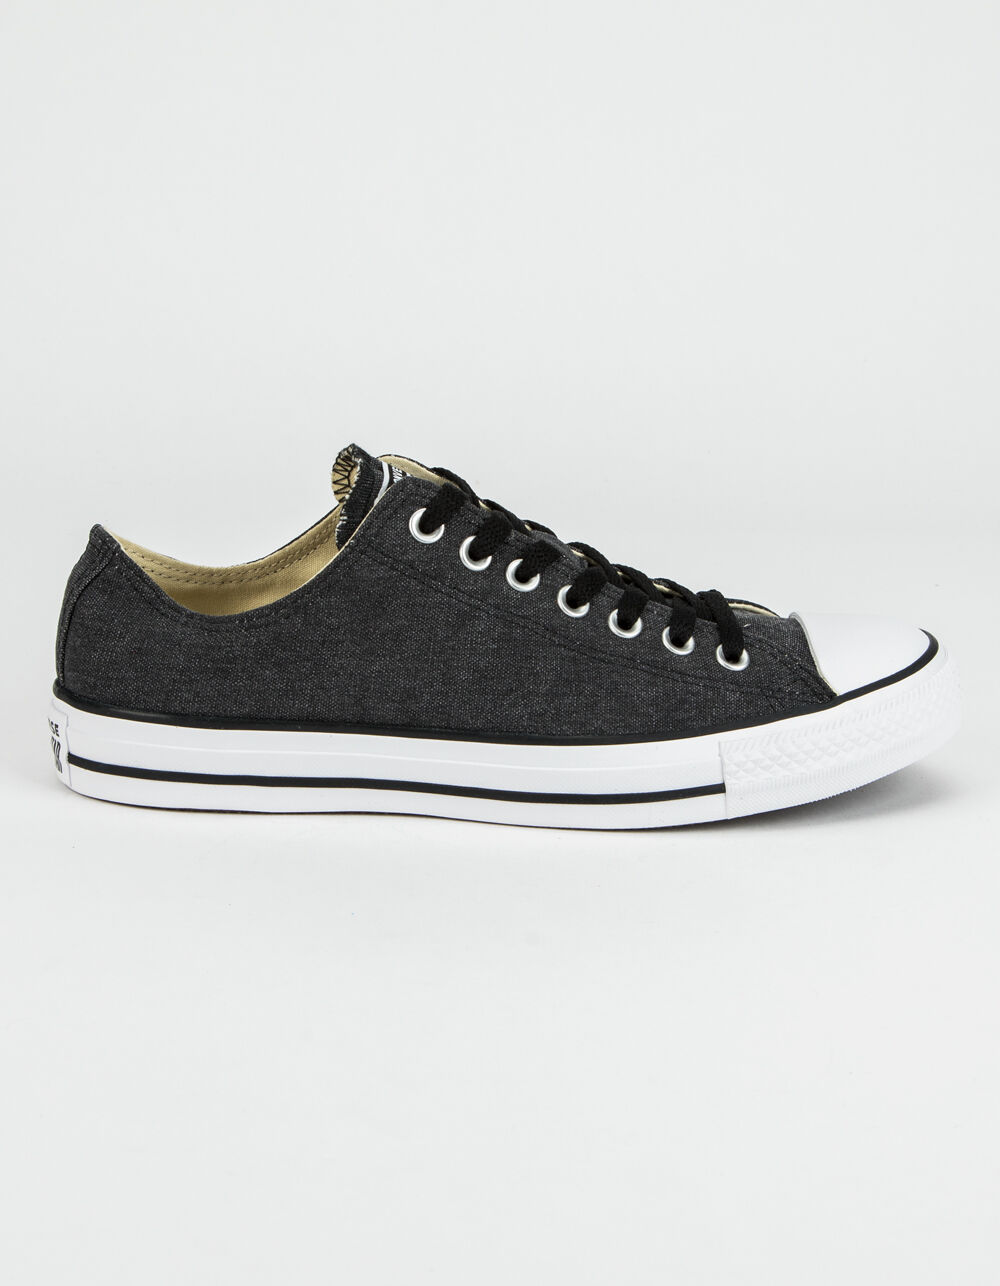 Image of CONVERSE CHUCK TAYLOR ALL STAR BLACK & WHITE LOW TOP SHOES